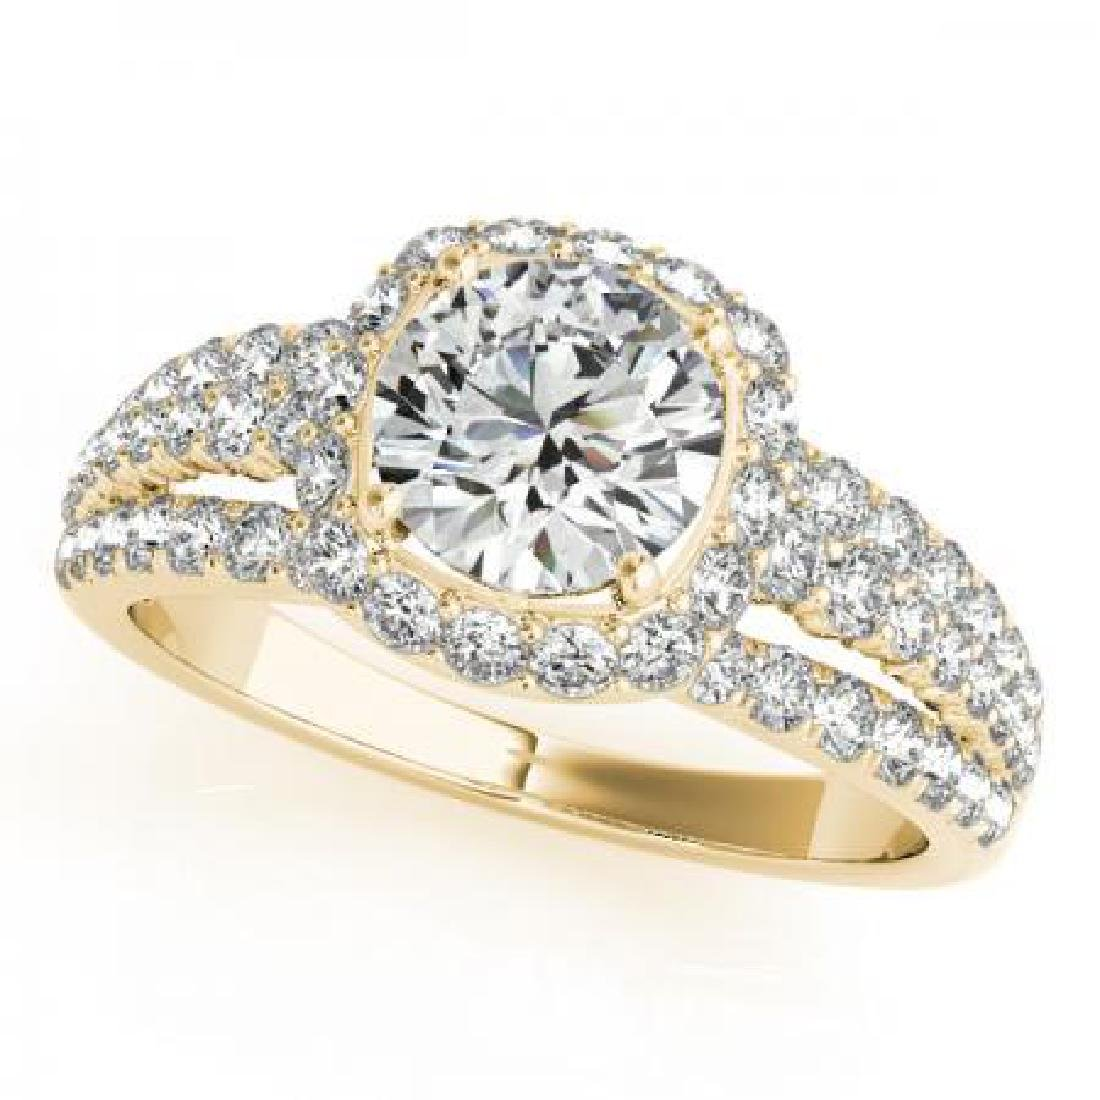 CERTIFIED 18K YELLOW GOLD 1.37 CT G-H/VS-SI1 DIAMOND HA